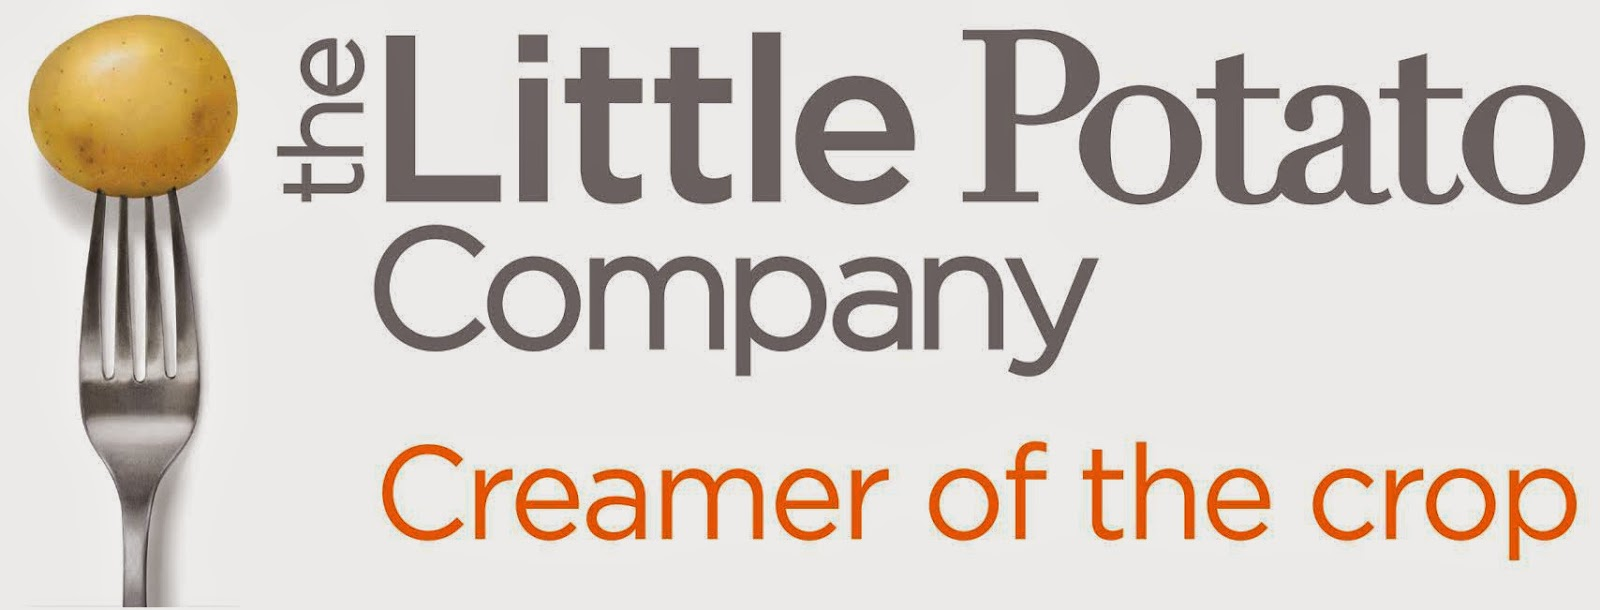 The Little Potato Company Creamer of the crop